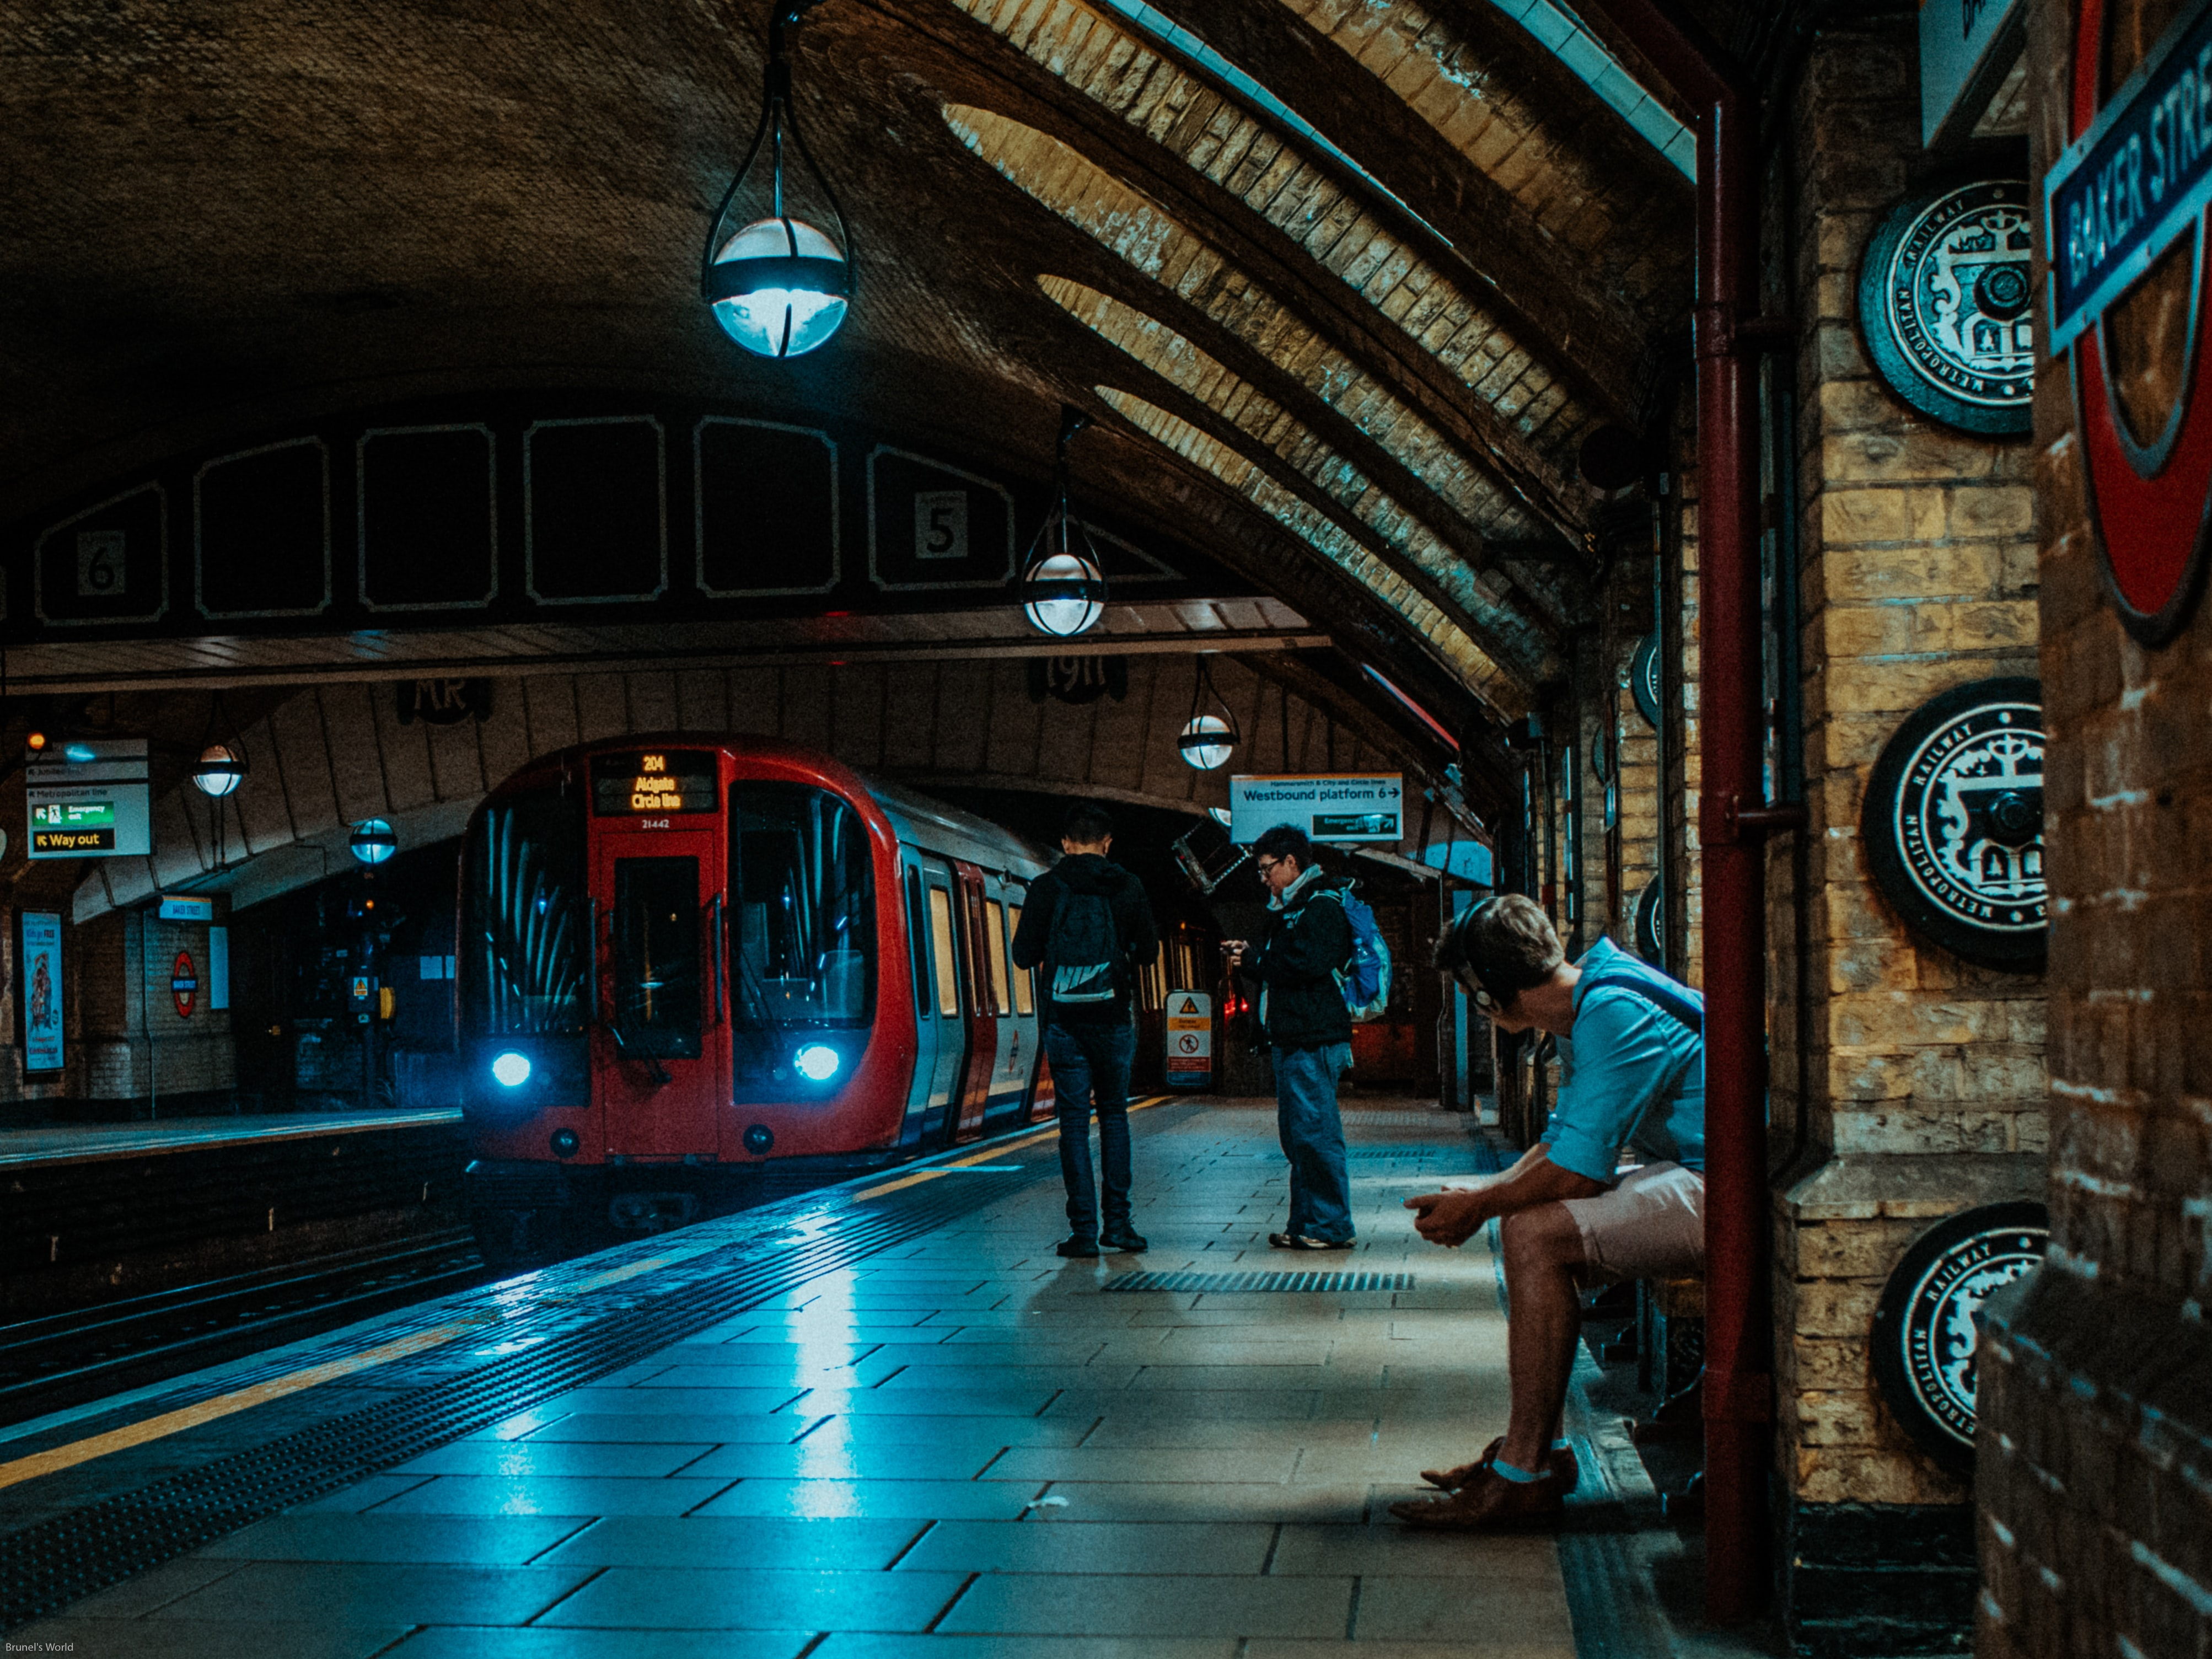 The Train Station stories